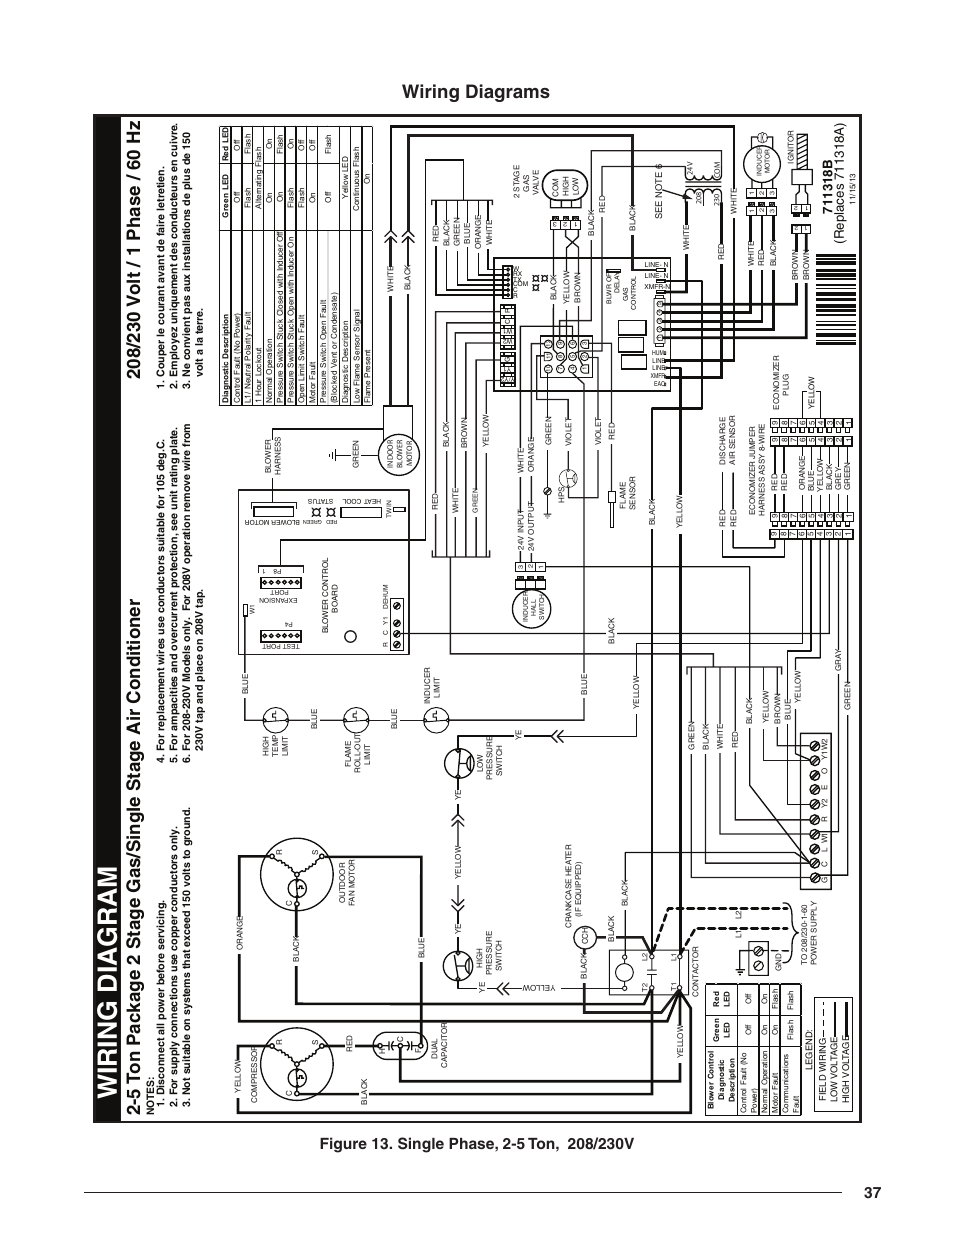 Wiring Diagrams  Figure 13  Single Phase  2